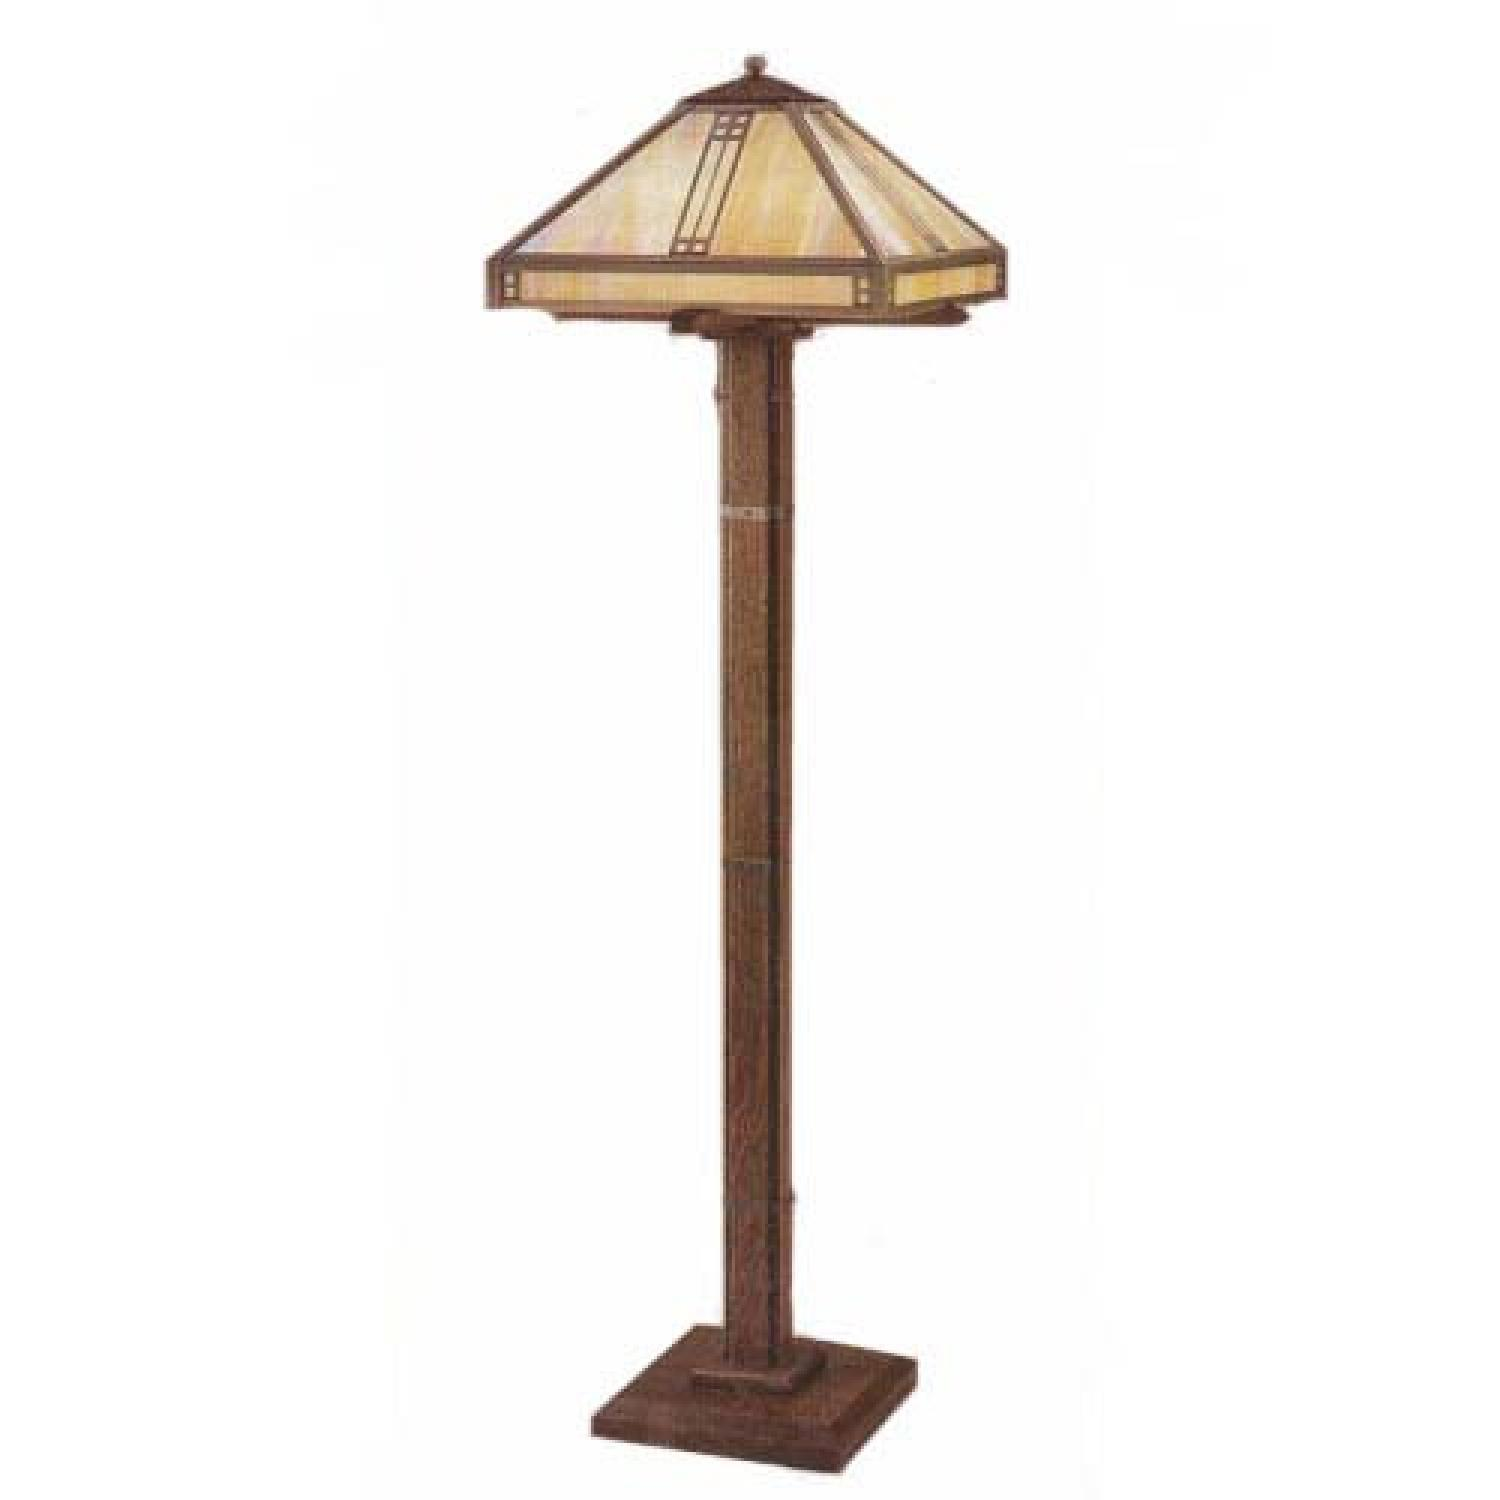 Arroyo Craftsman Arts & Crafts Floor lamp - image-0